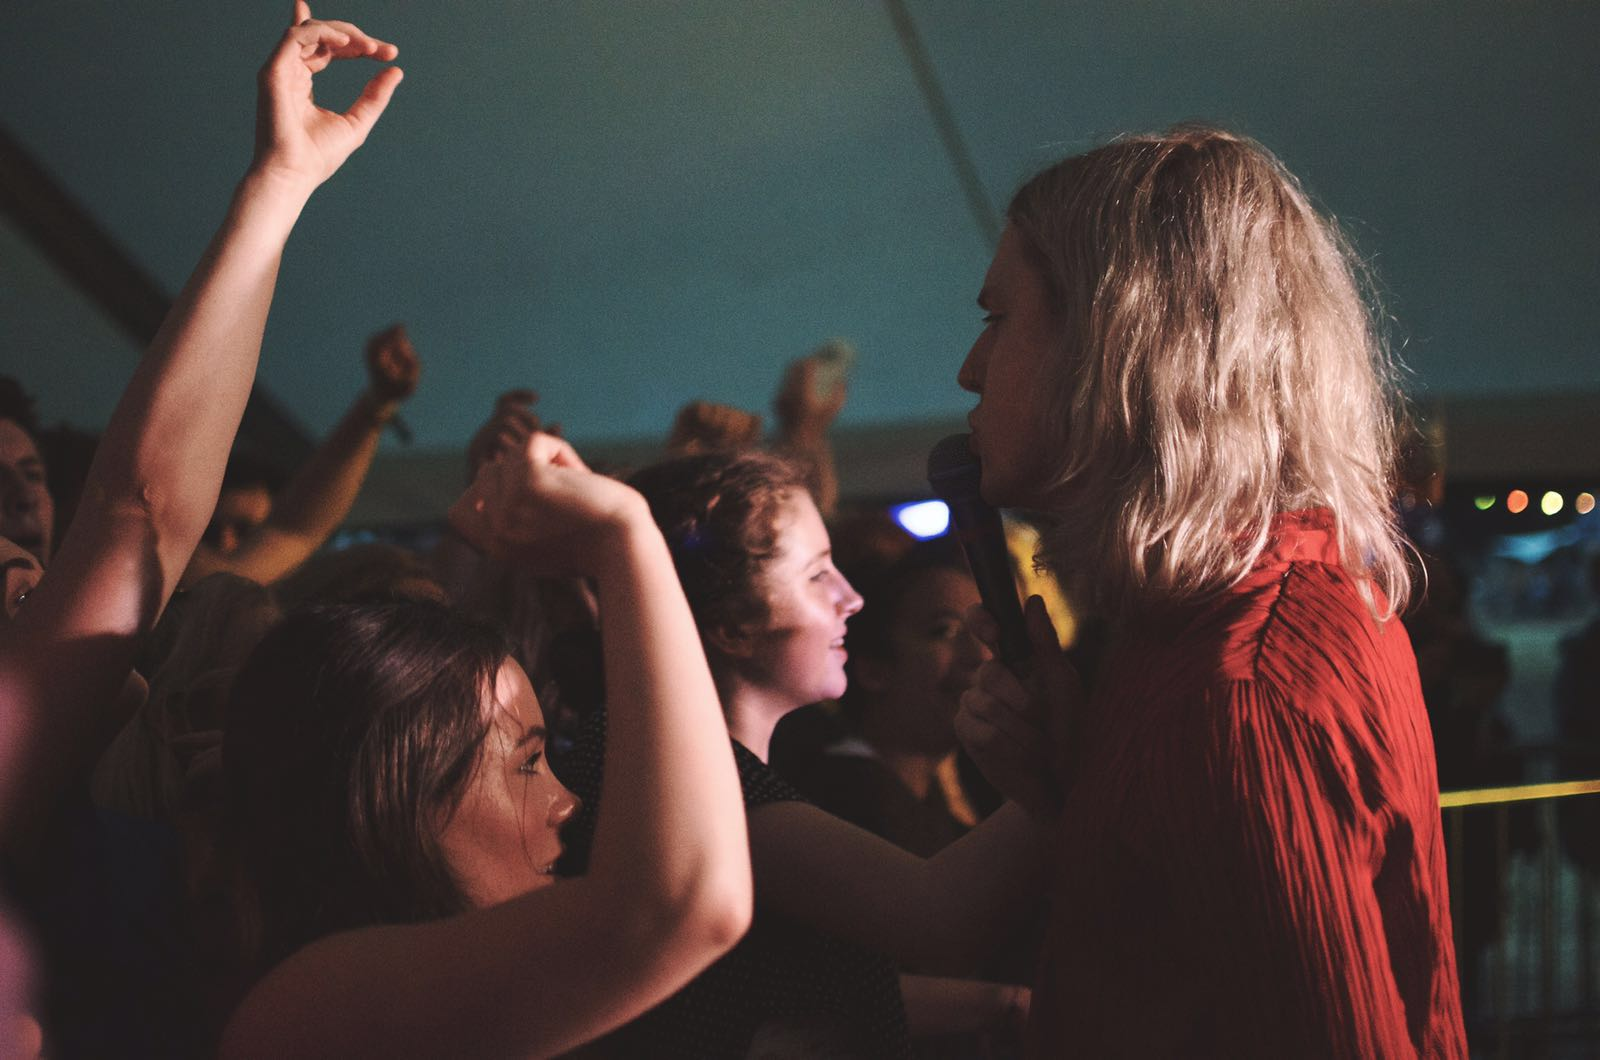 Sundara Karma crowd shot